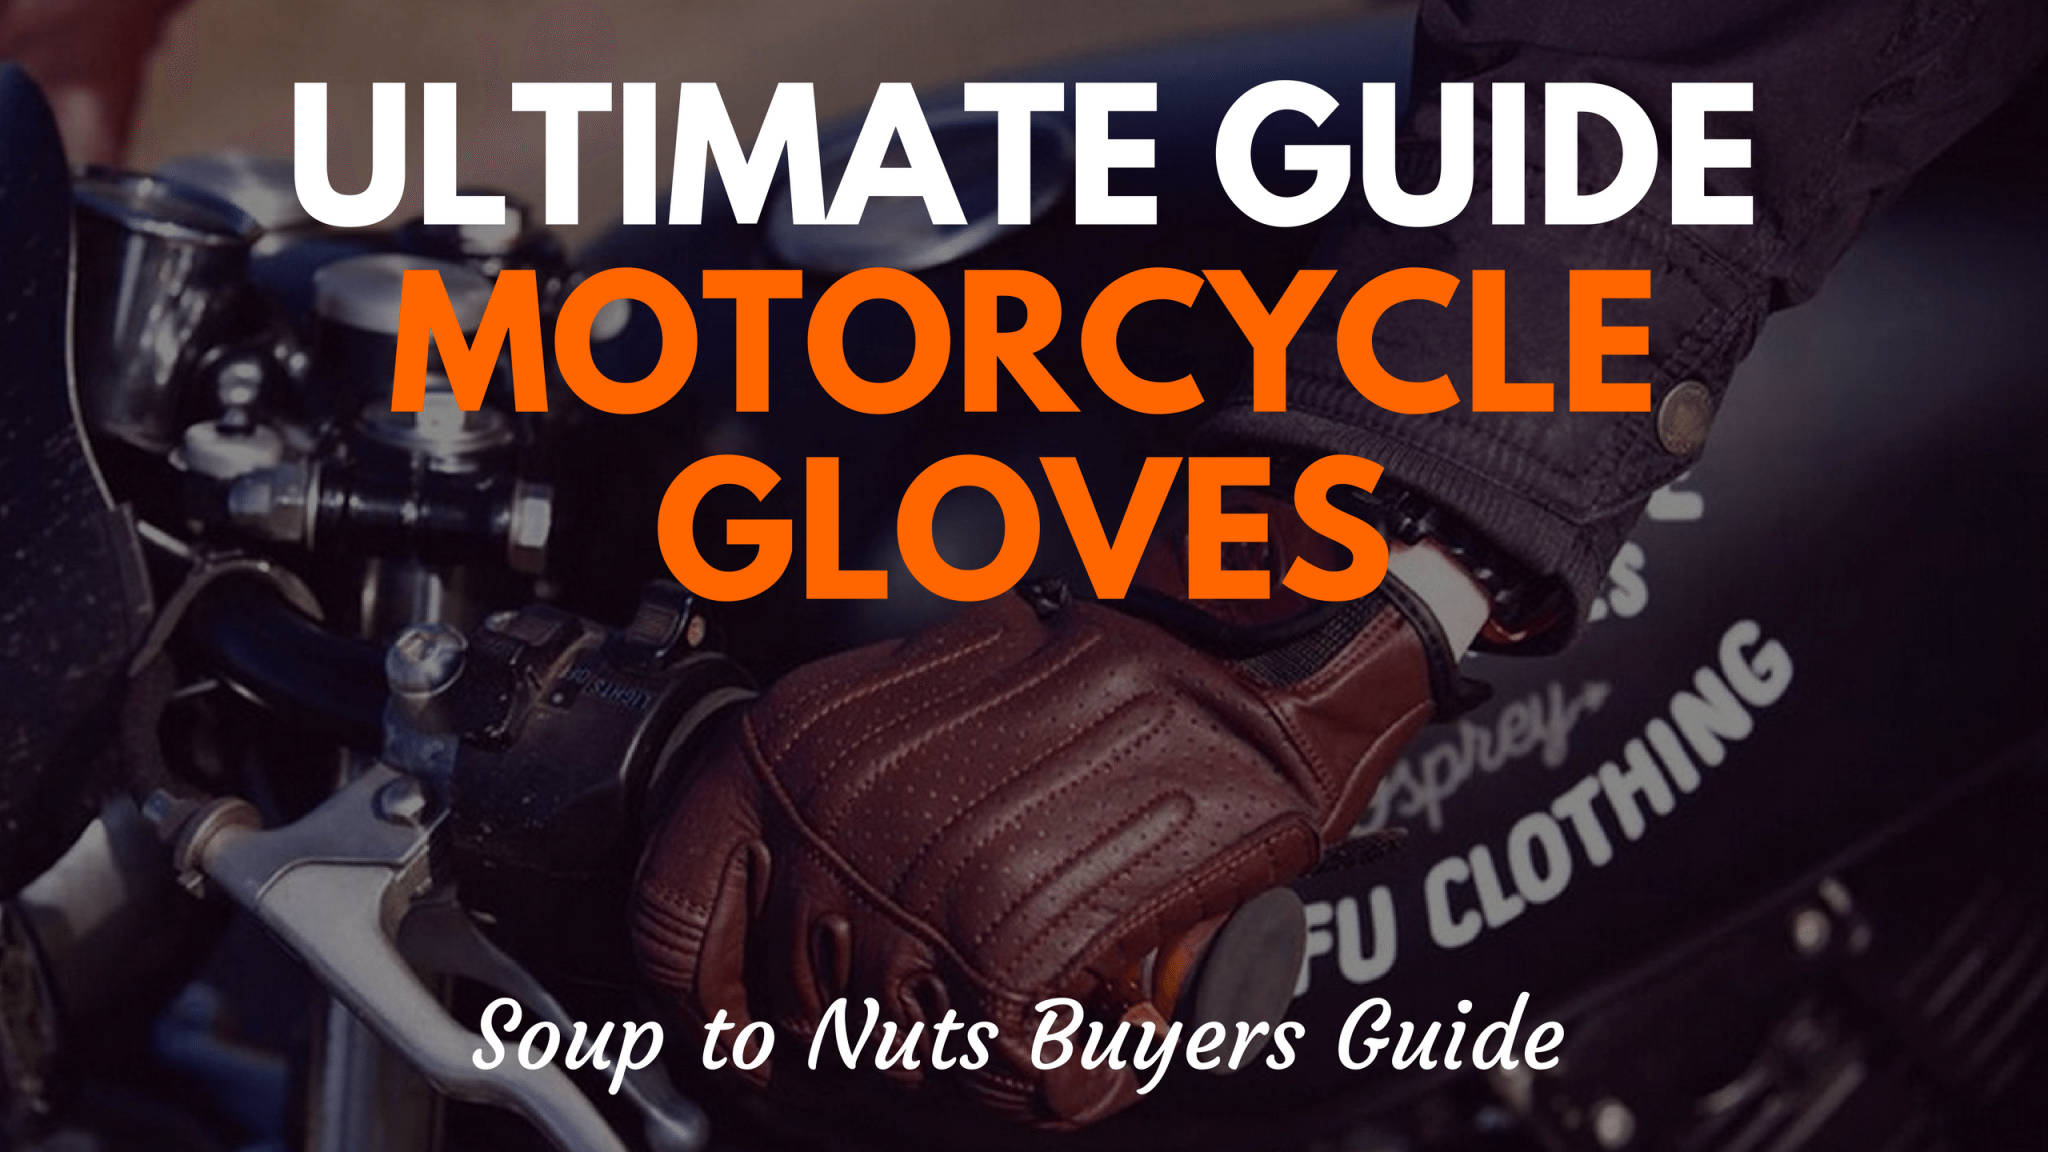 Ultimate Guide to Motorcycle Gloves